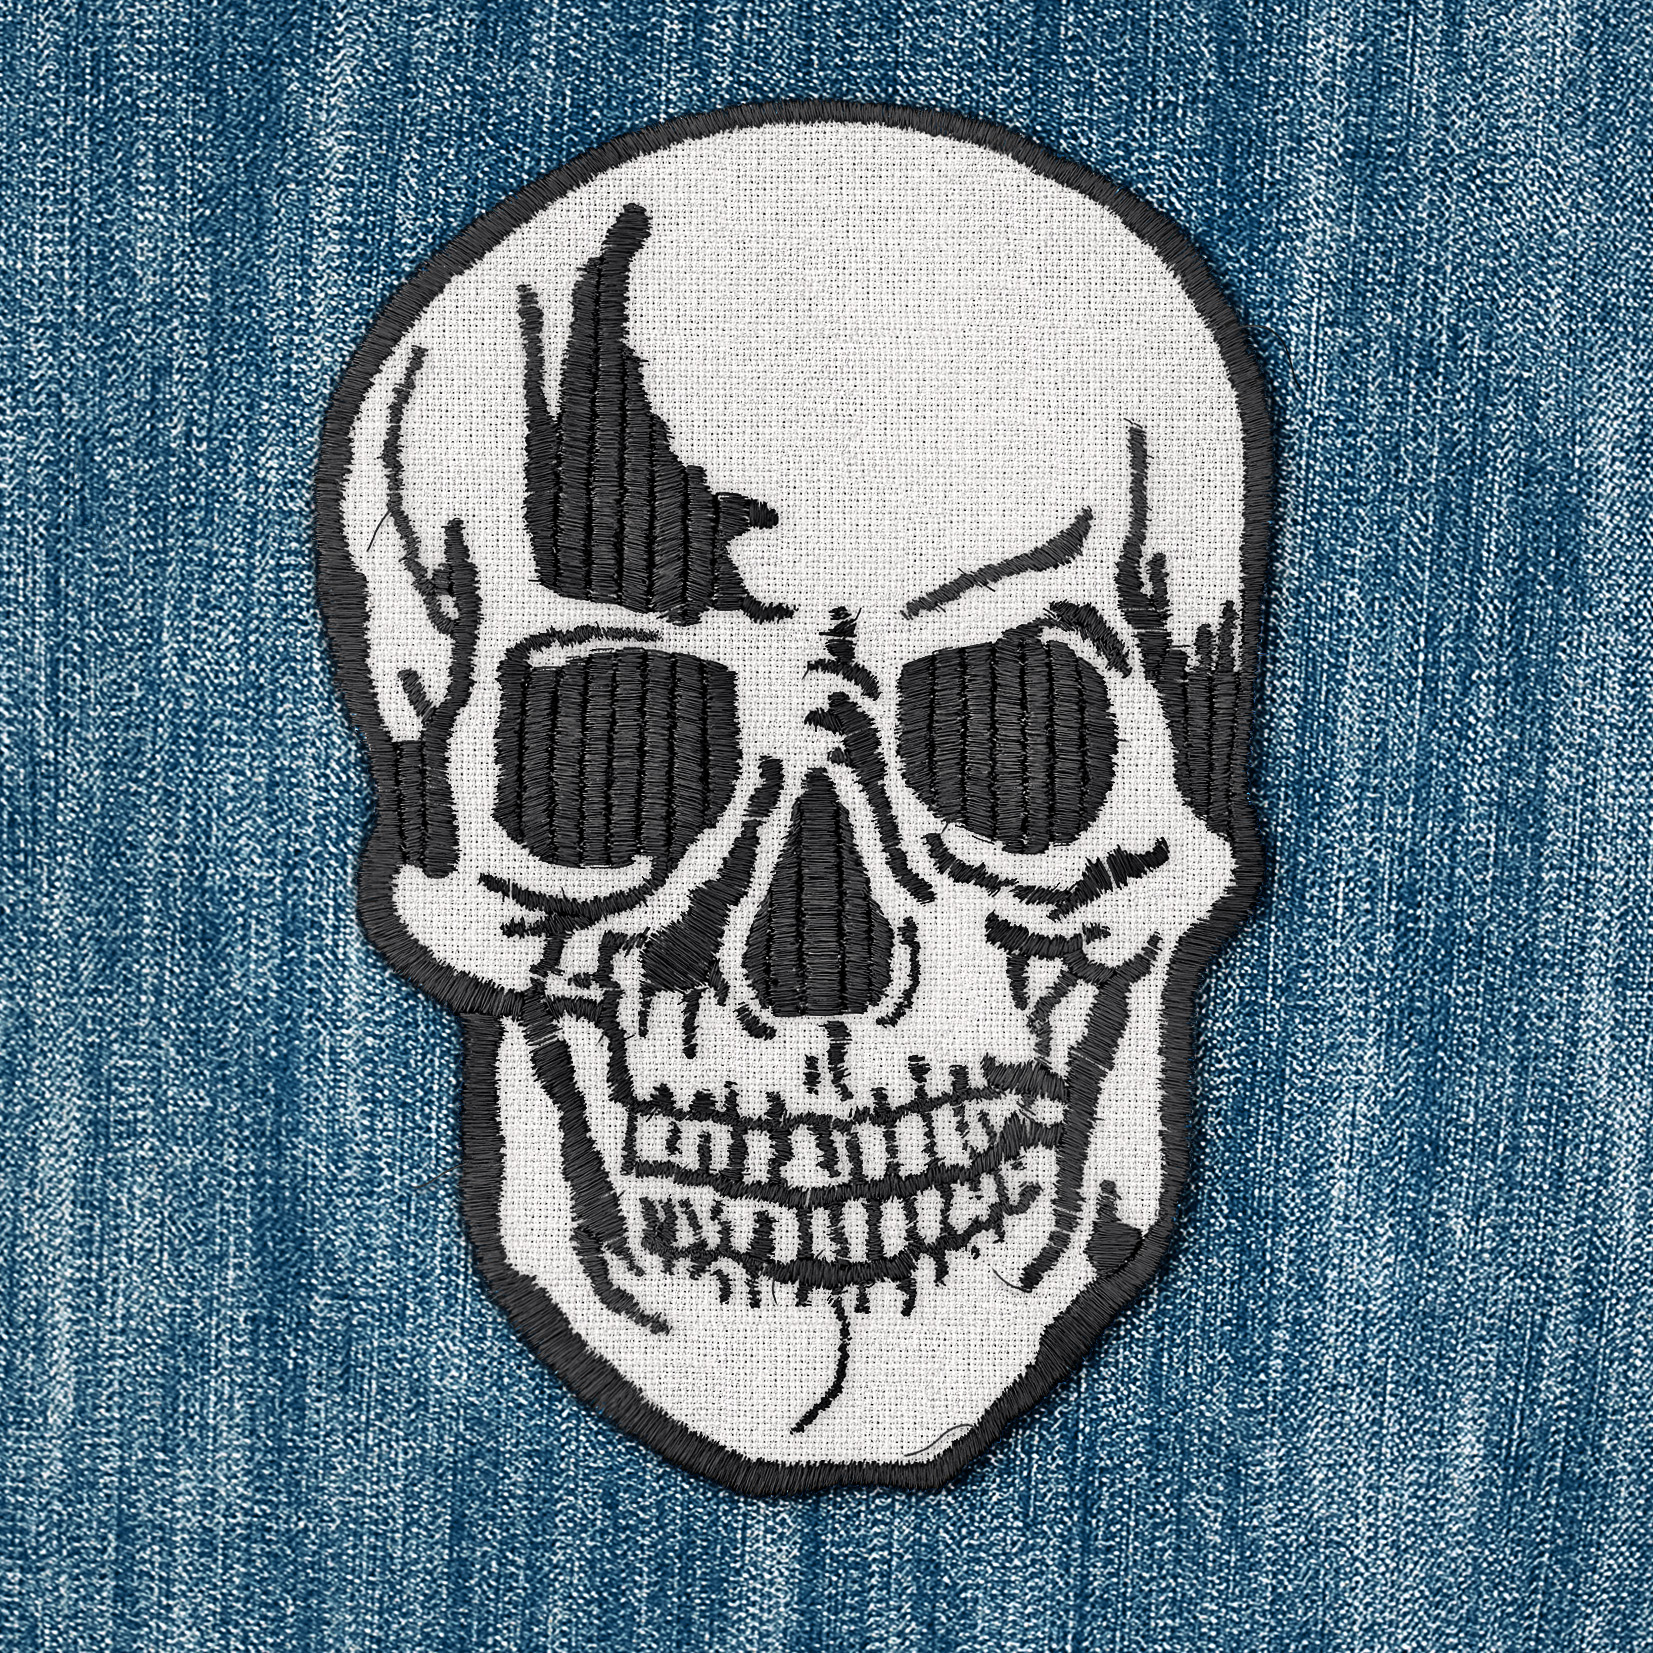 skull_patch_detail.jpg